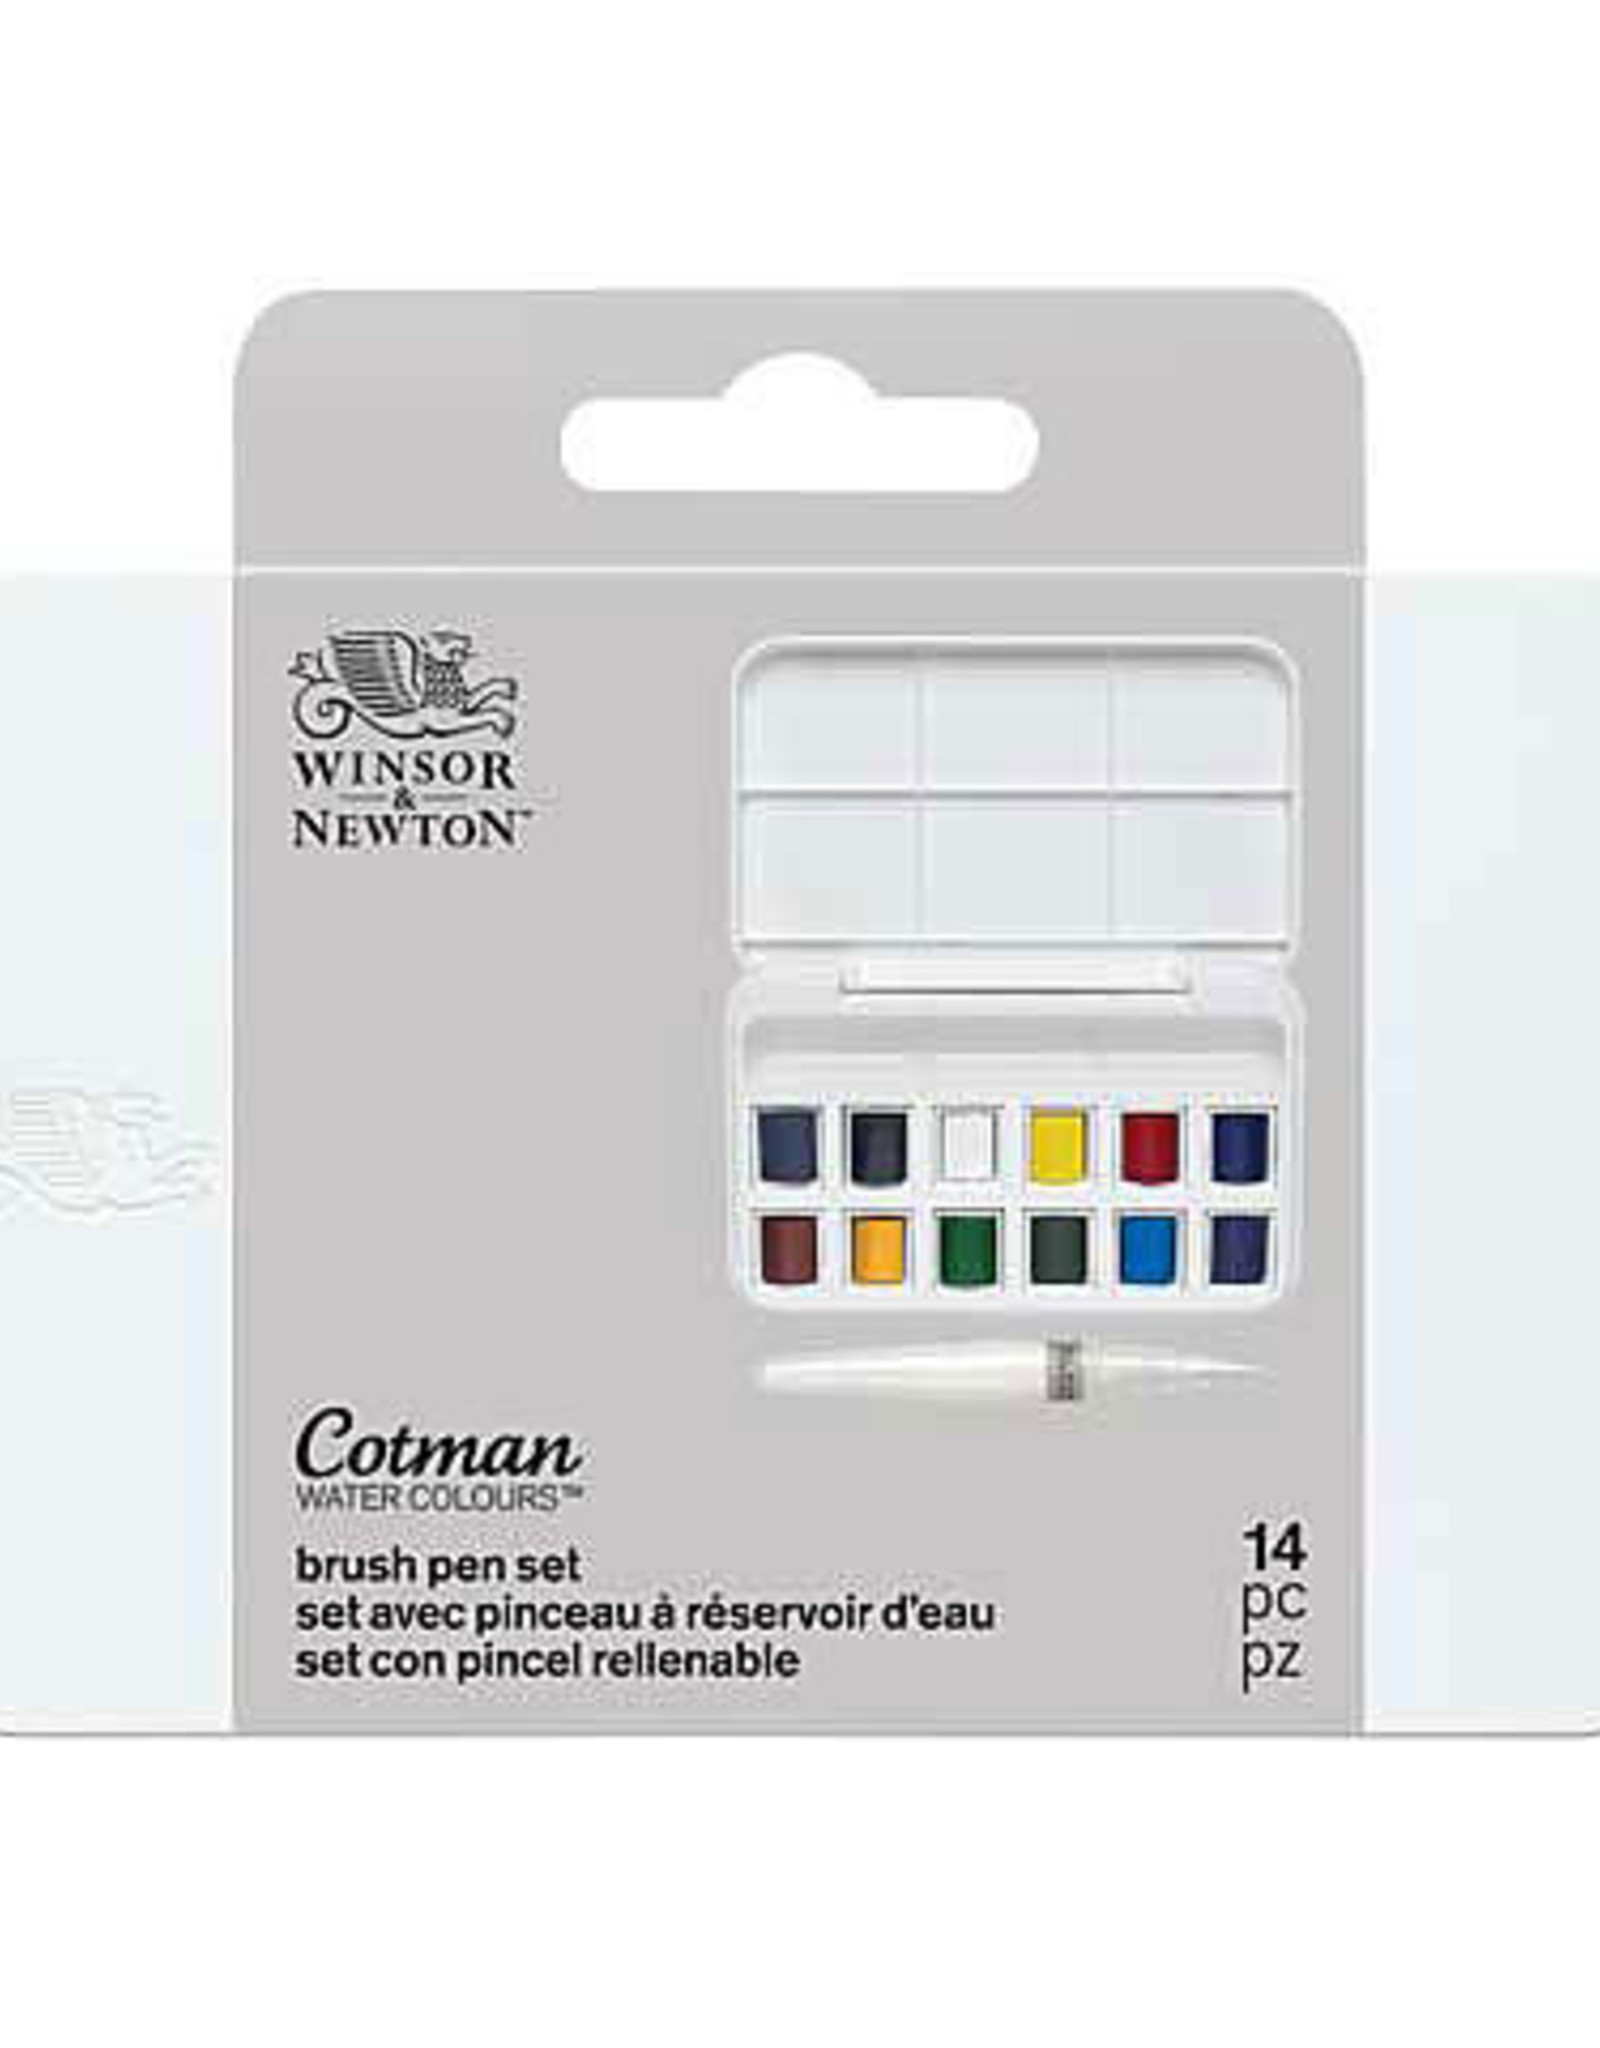 Cotman Watercolors